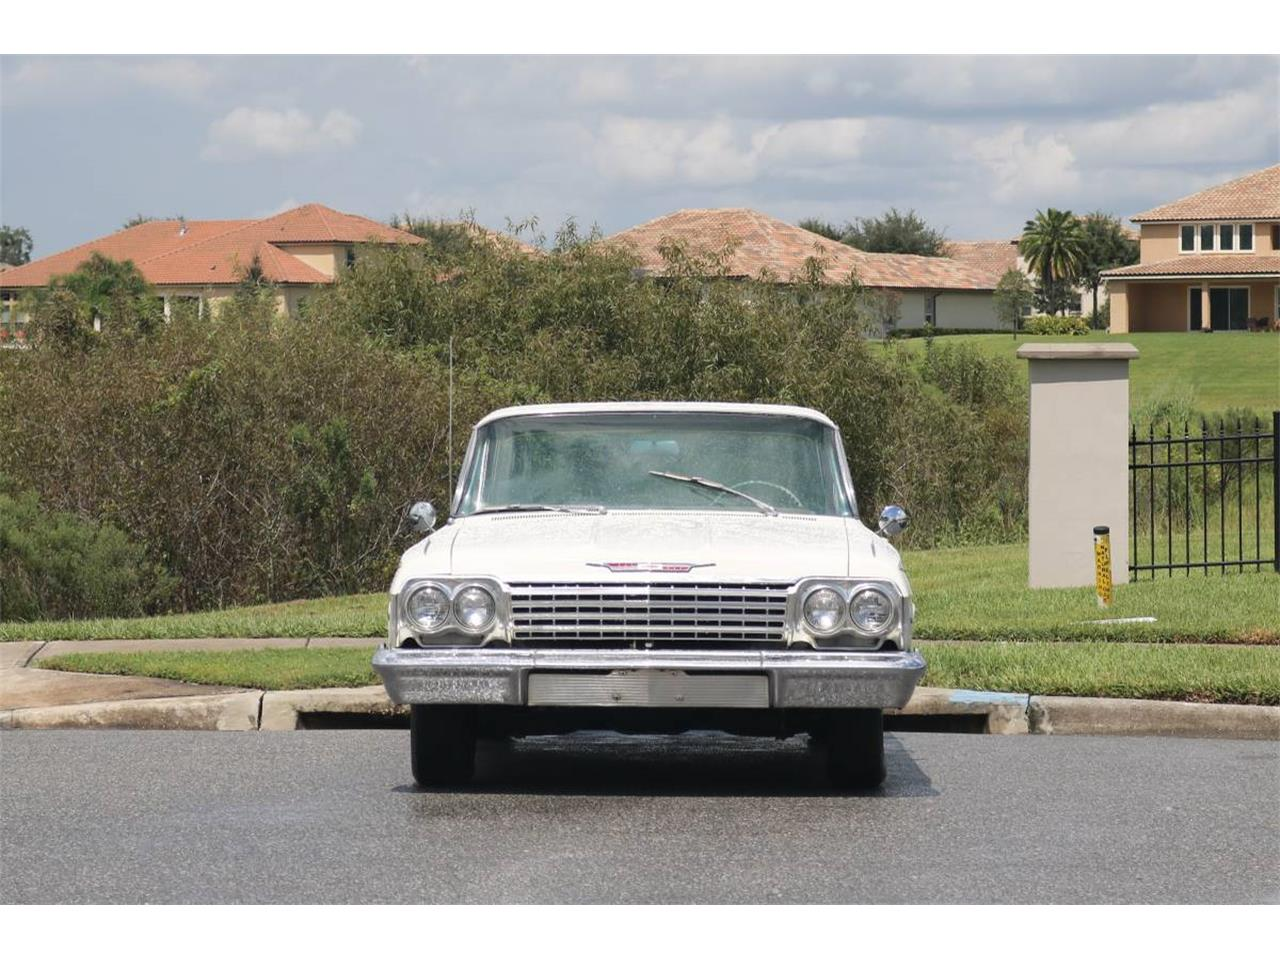 Large Picture of Classic '62 Chevrolet Impala located in Florida Offered by a Private Seller - JJAL